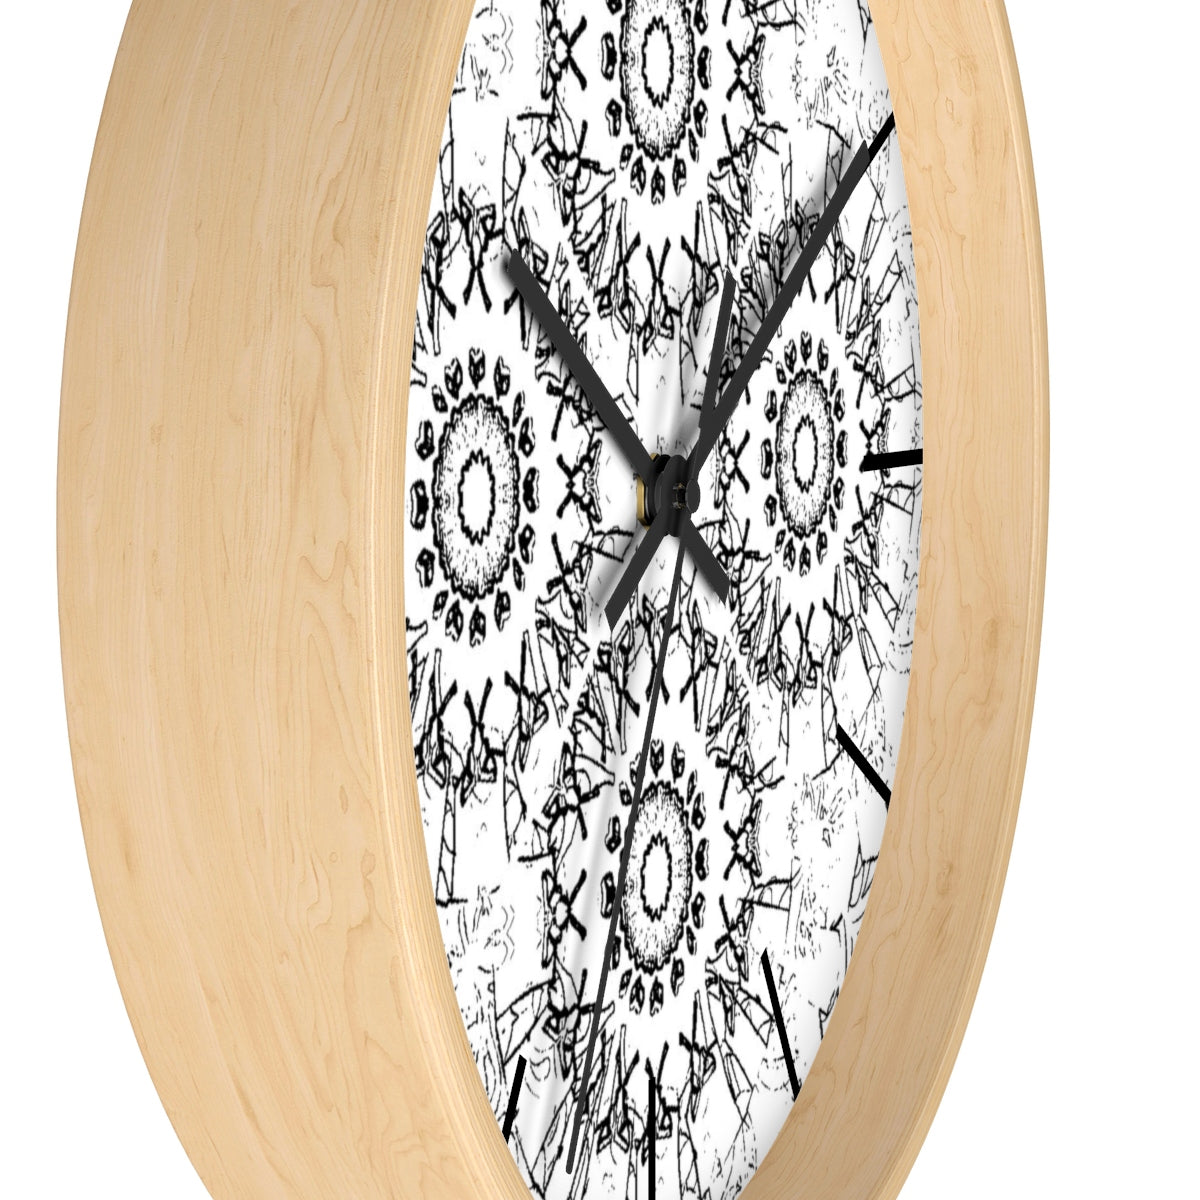 Mouthpiece - Wall clock - Designed by @remlor - Remlor Art